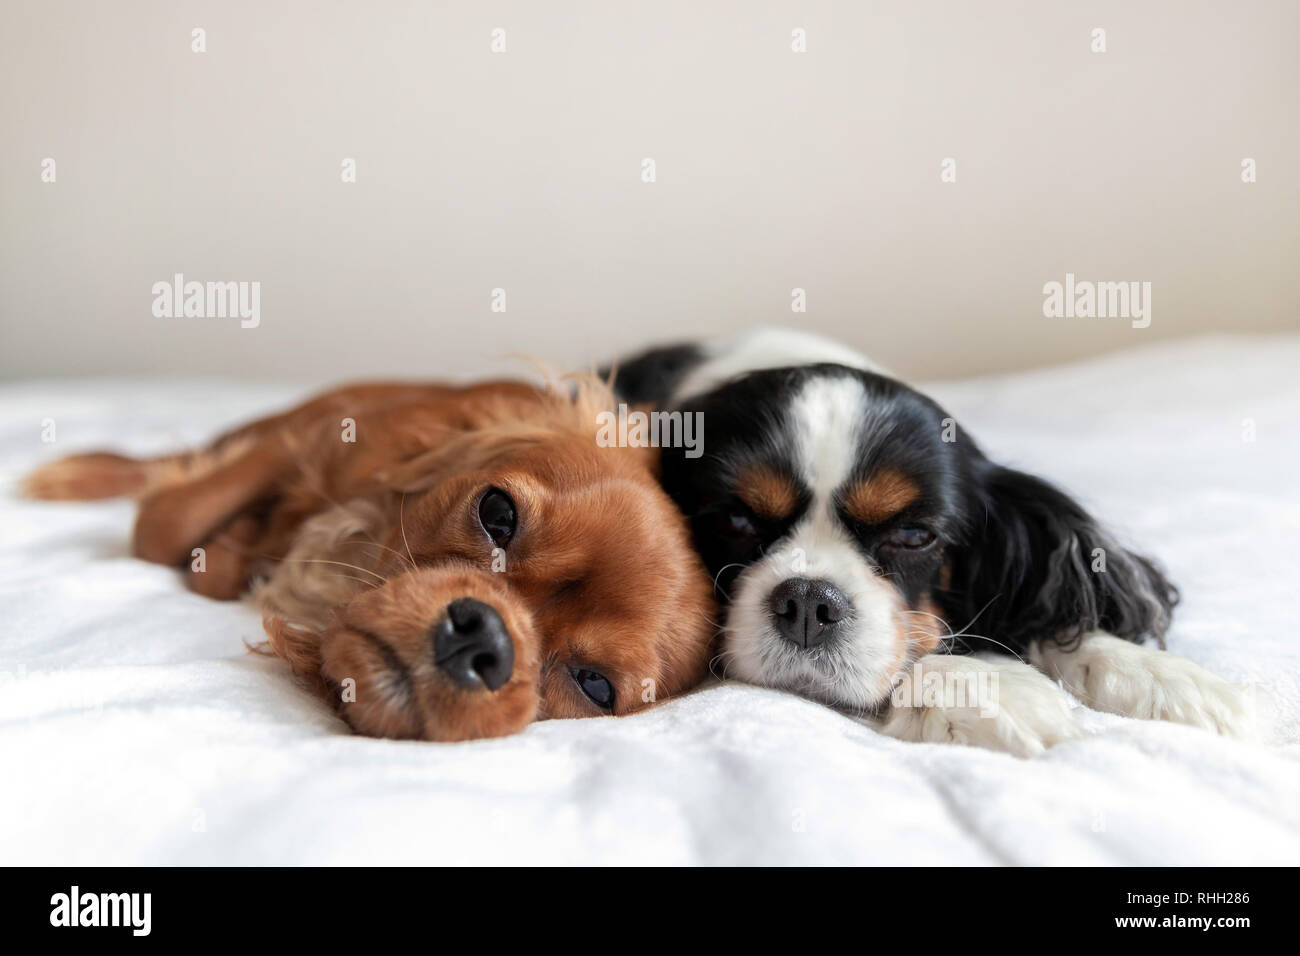 Two dogs sleeping togehter on the white blanket Stock Photo